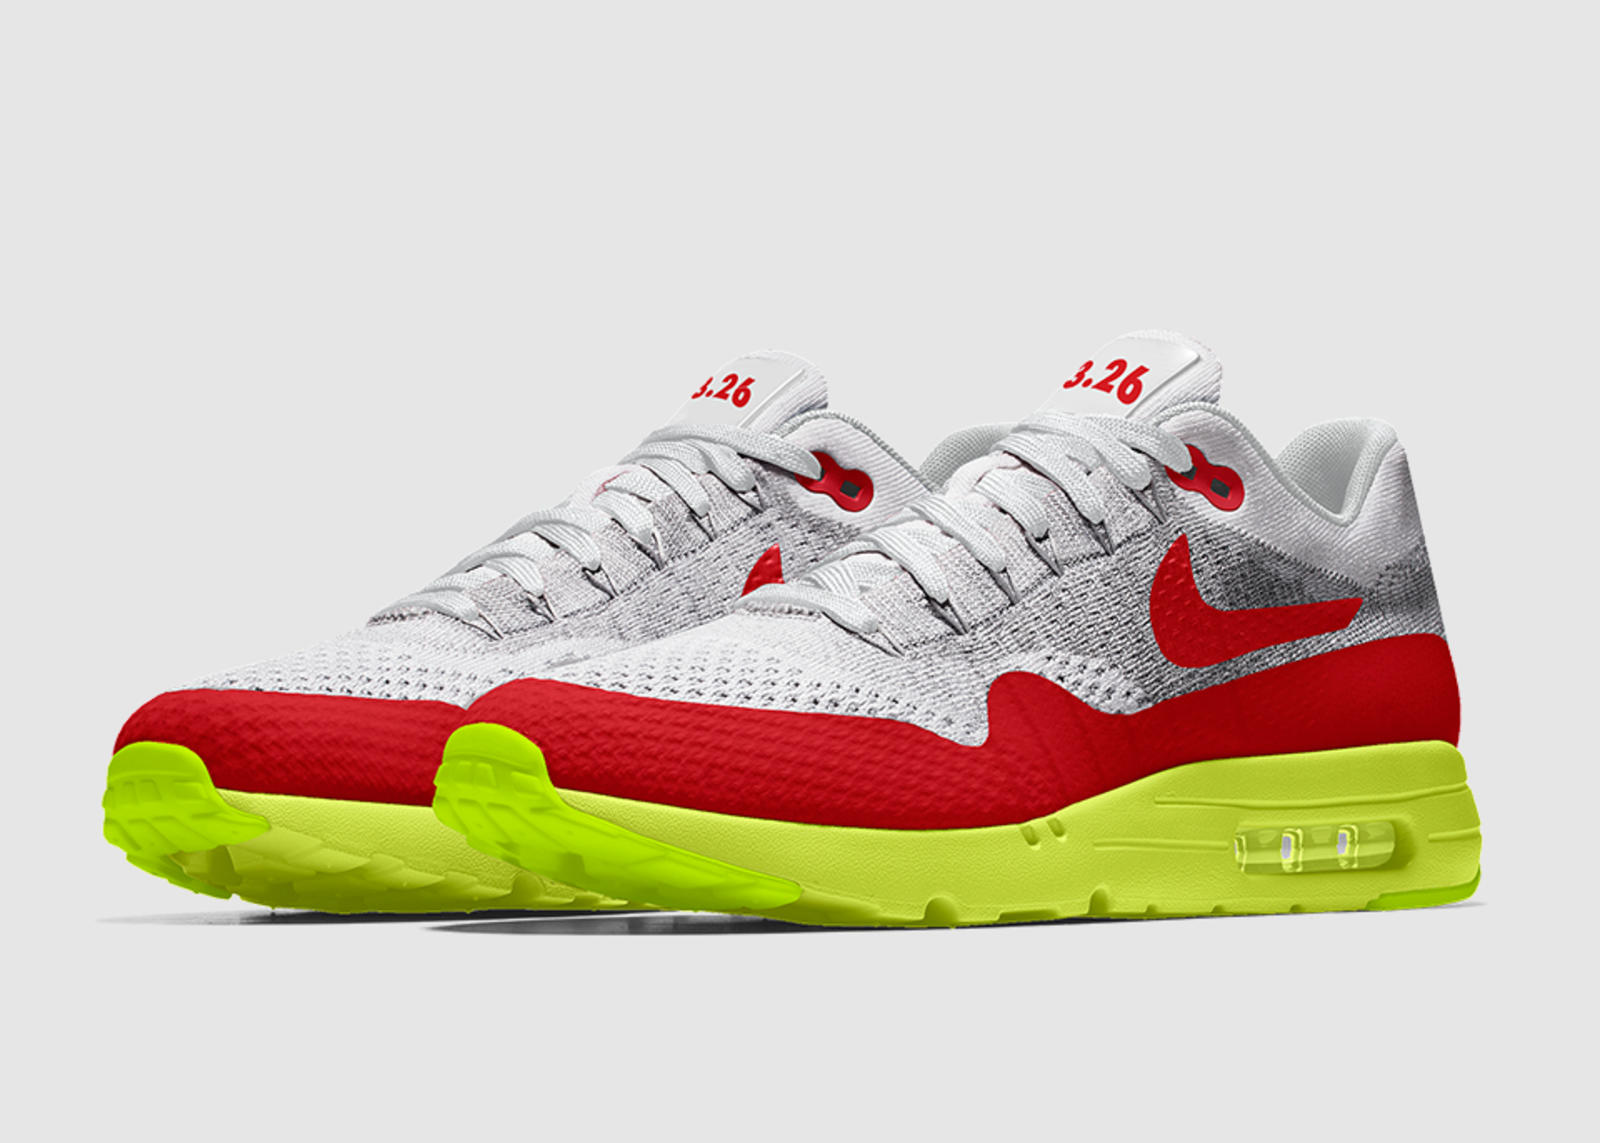 6a73518711e NikeID to Drop 'Air Max Day' Air Max 1 Ultra and VaporMax | Sidewalk ...